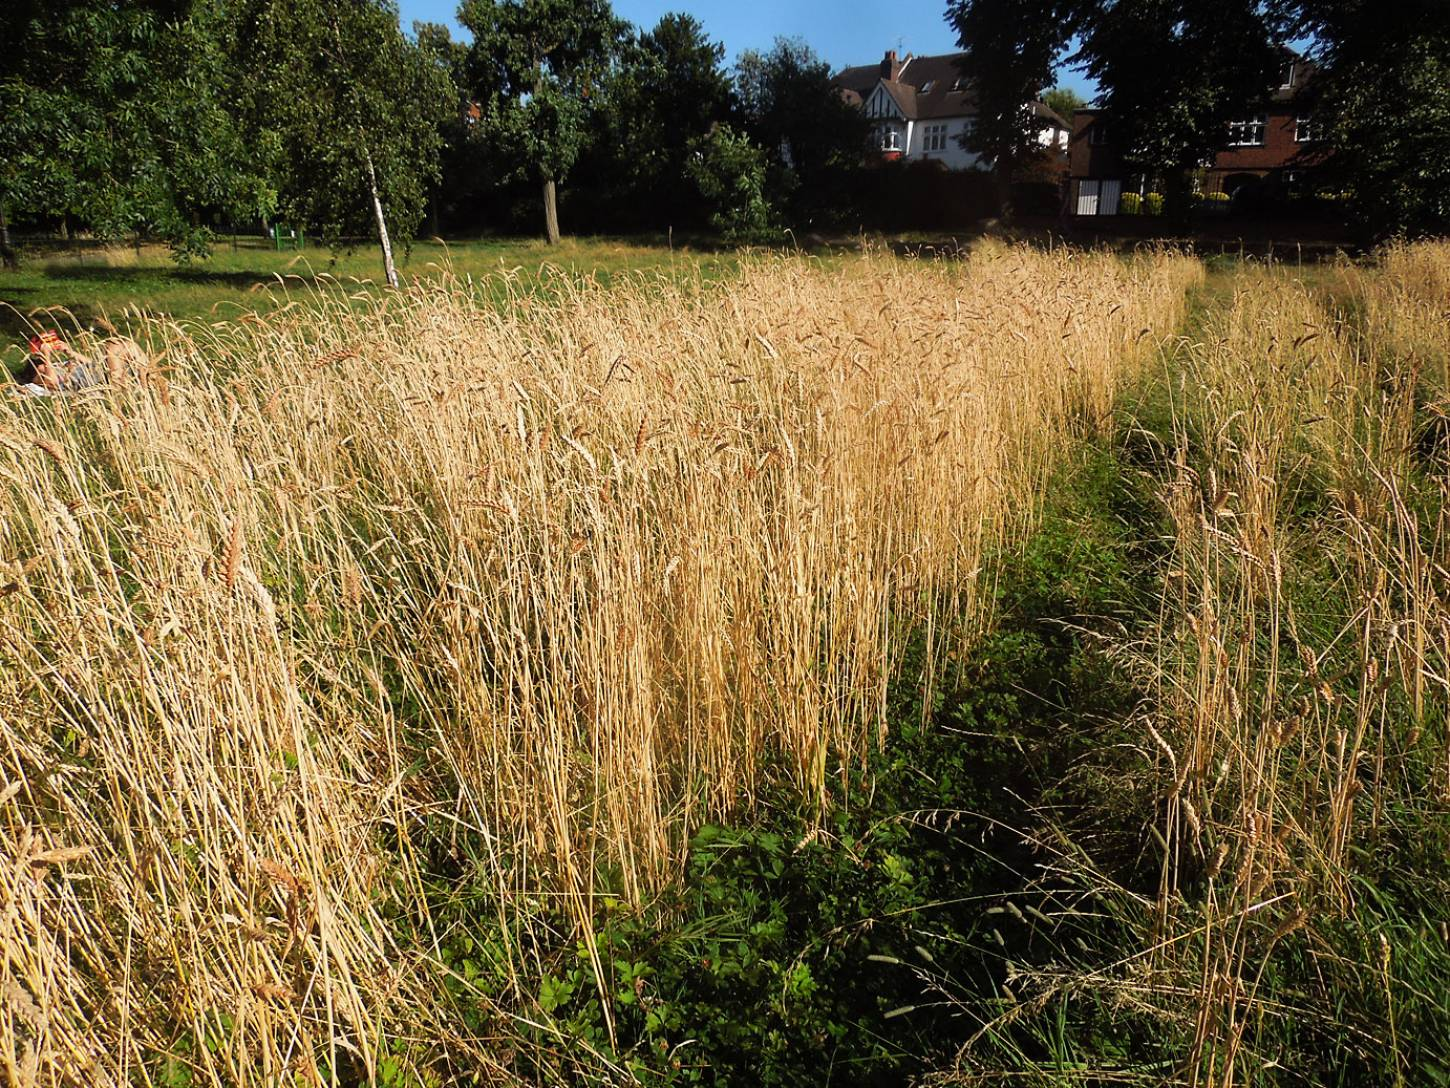 Miller's Choice heritage population, pre-harvest review, Ruskin Park - 5:41pm&nbsp;7<sup>th</sup>&nbsp;Aug.&nbsp;'16